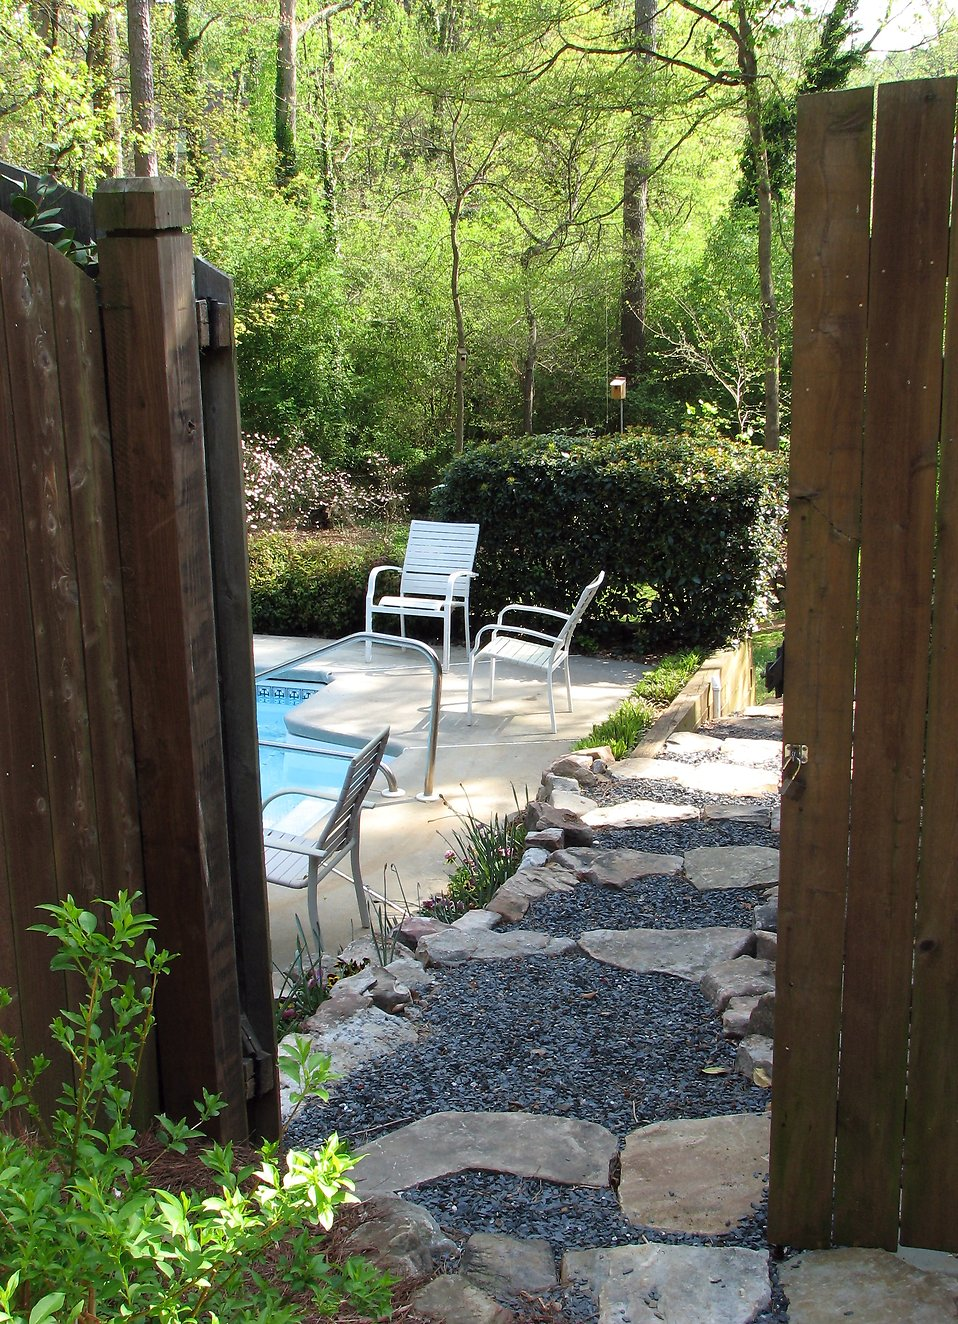 A pool and chairs in a backyard behind a fence : Free Stock Photo